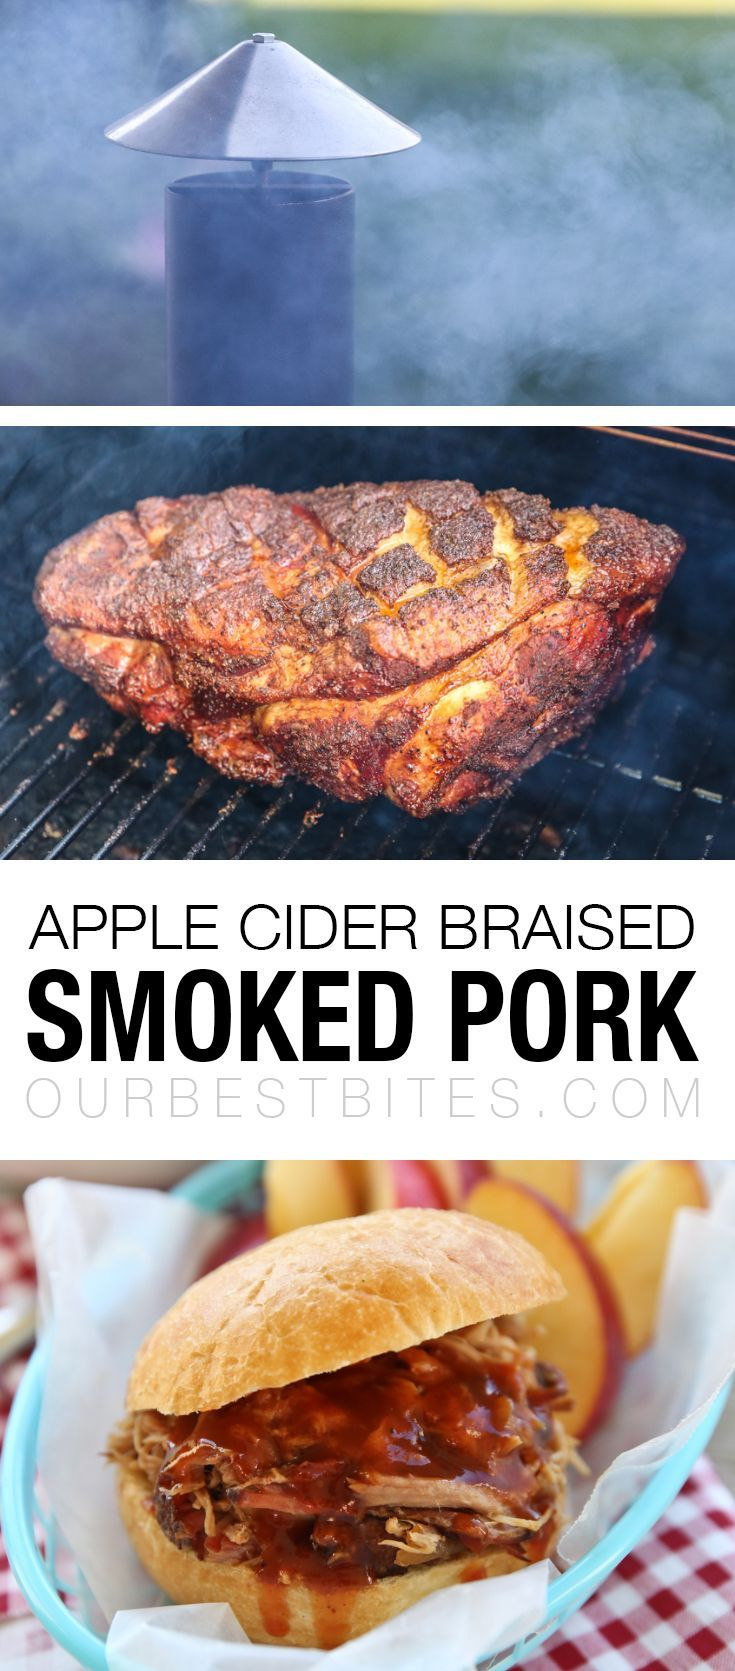 Smoked Pulled Pork Recipe : Traeger, Camp Chef, any pellet smoker - and you can make this amazing pulled pork with sweet and tangy apple cider sauce! via @ourbestbites